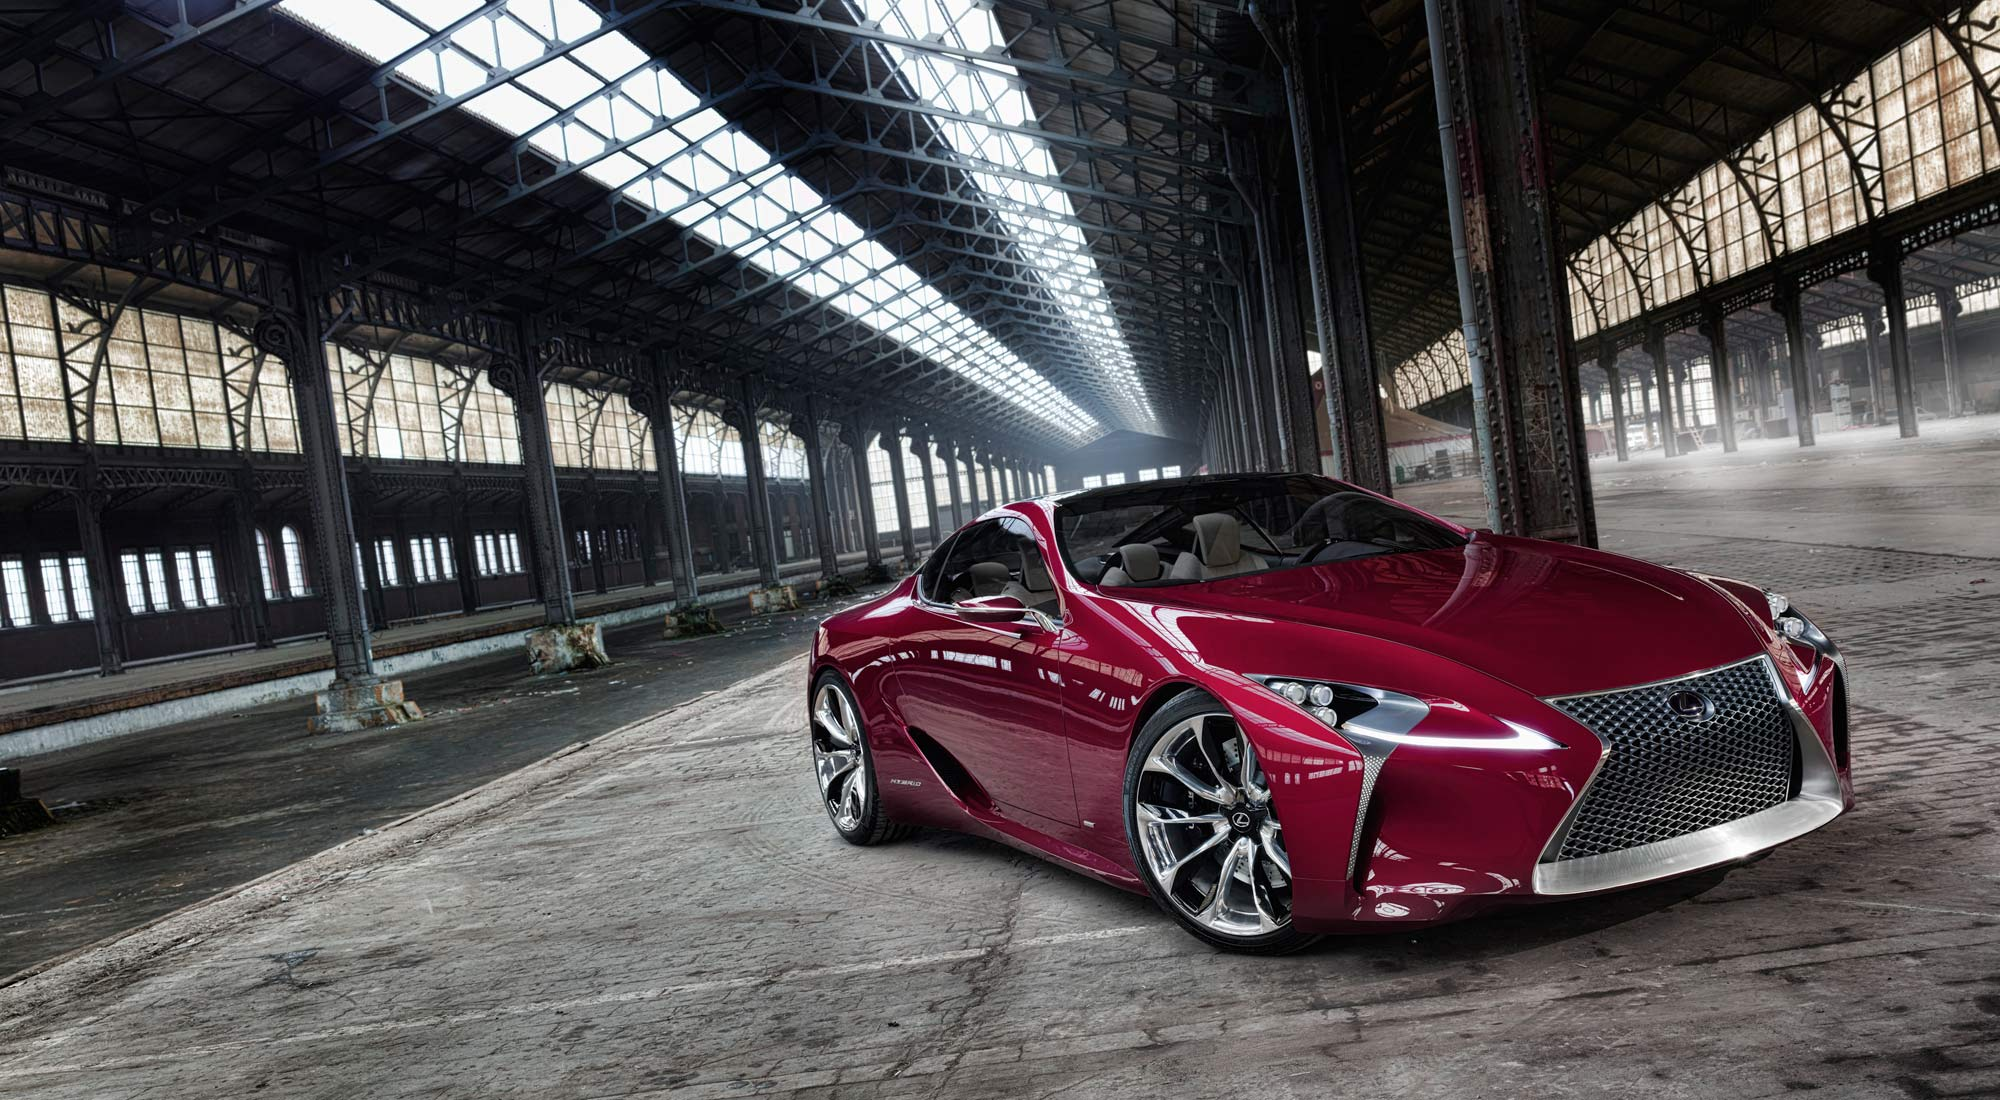 LF FC 1 Toyotau0027s Luxury Vehicle Division, Lexus, Has Introduced The Newest Concept  Car ...